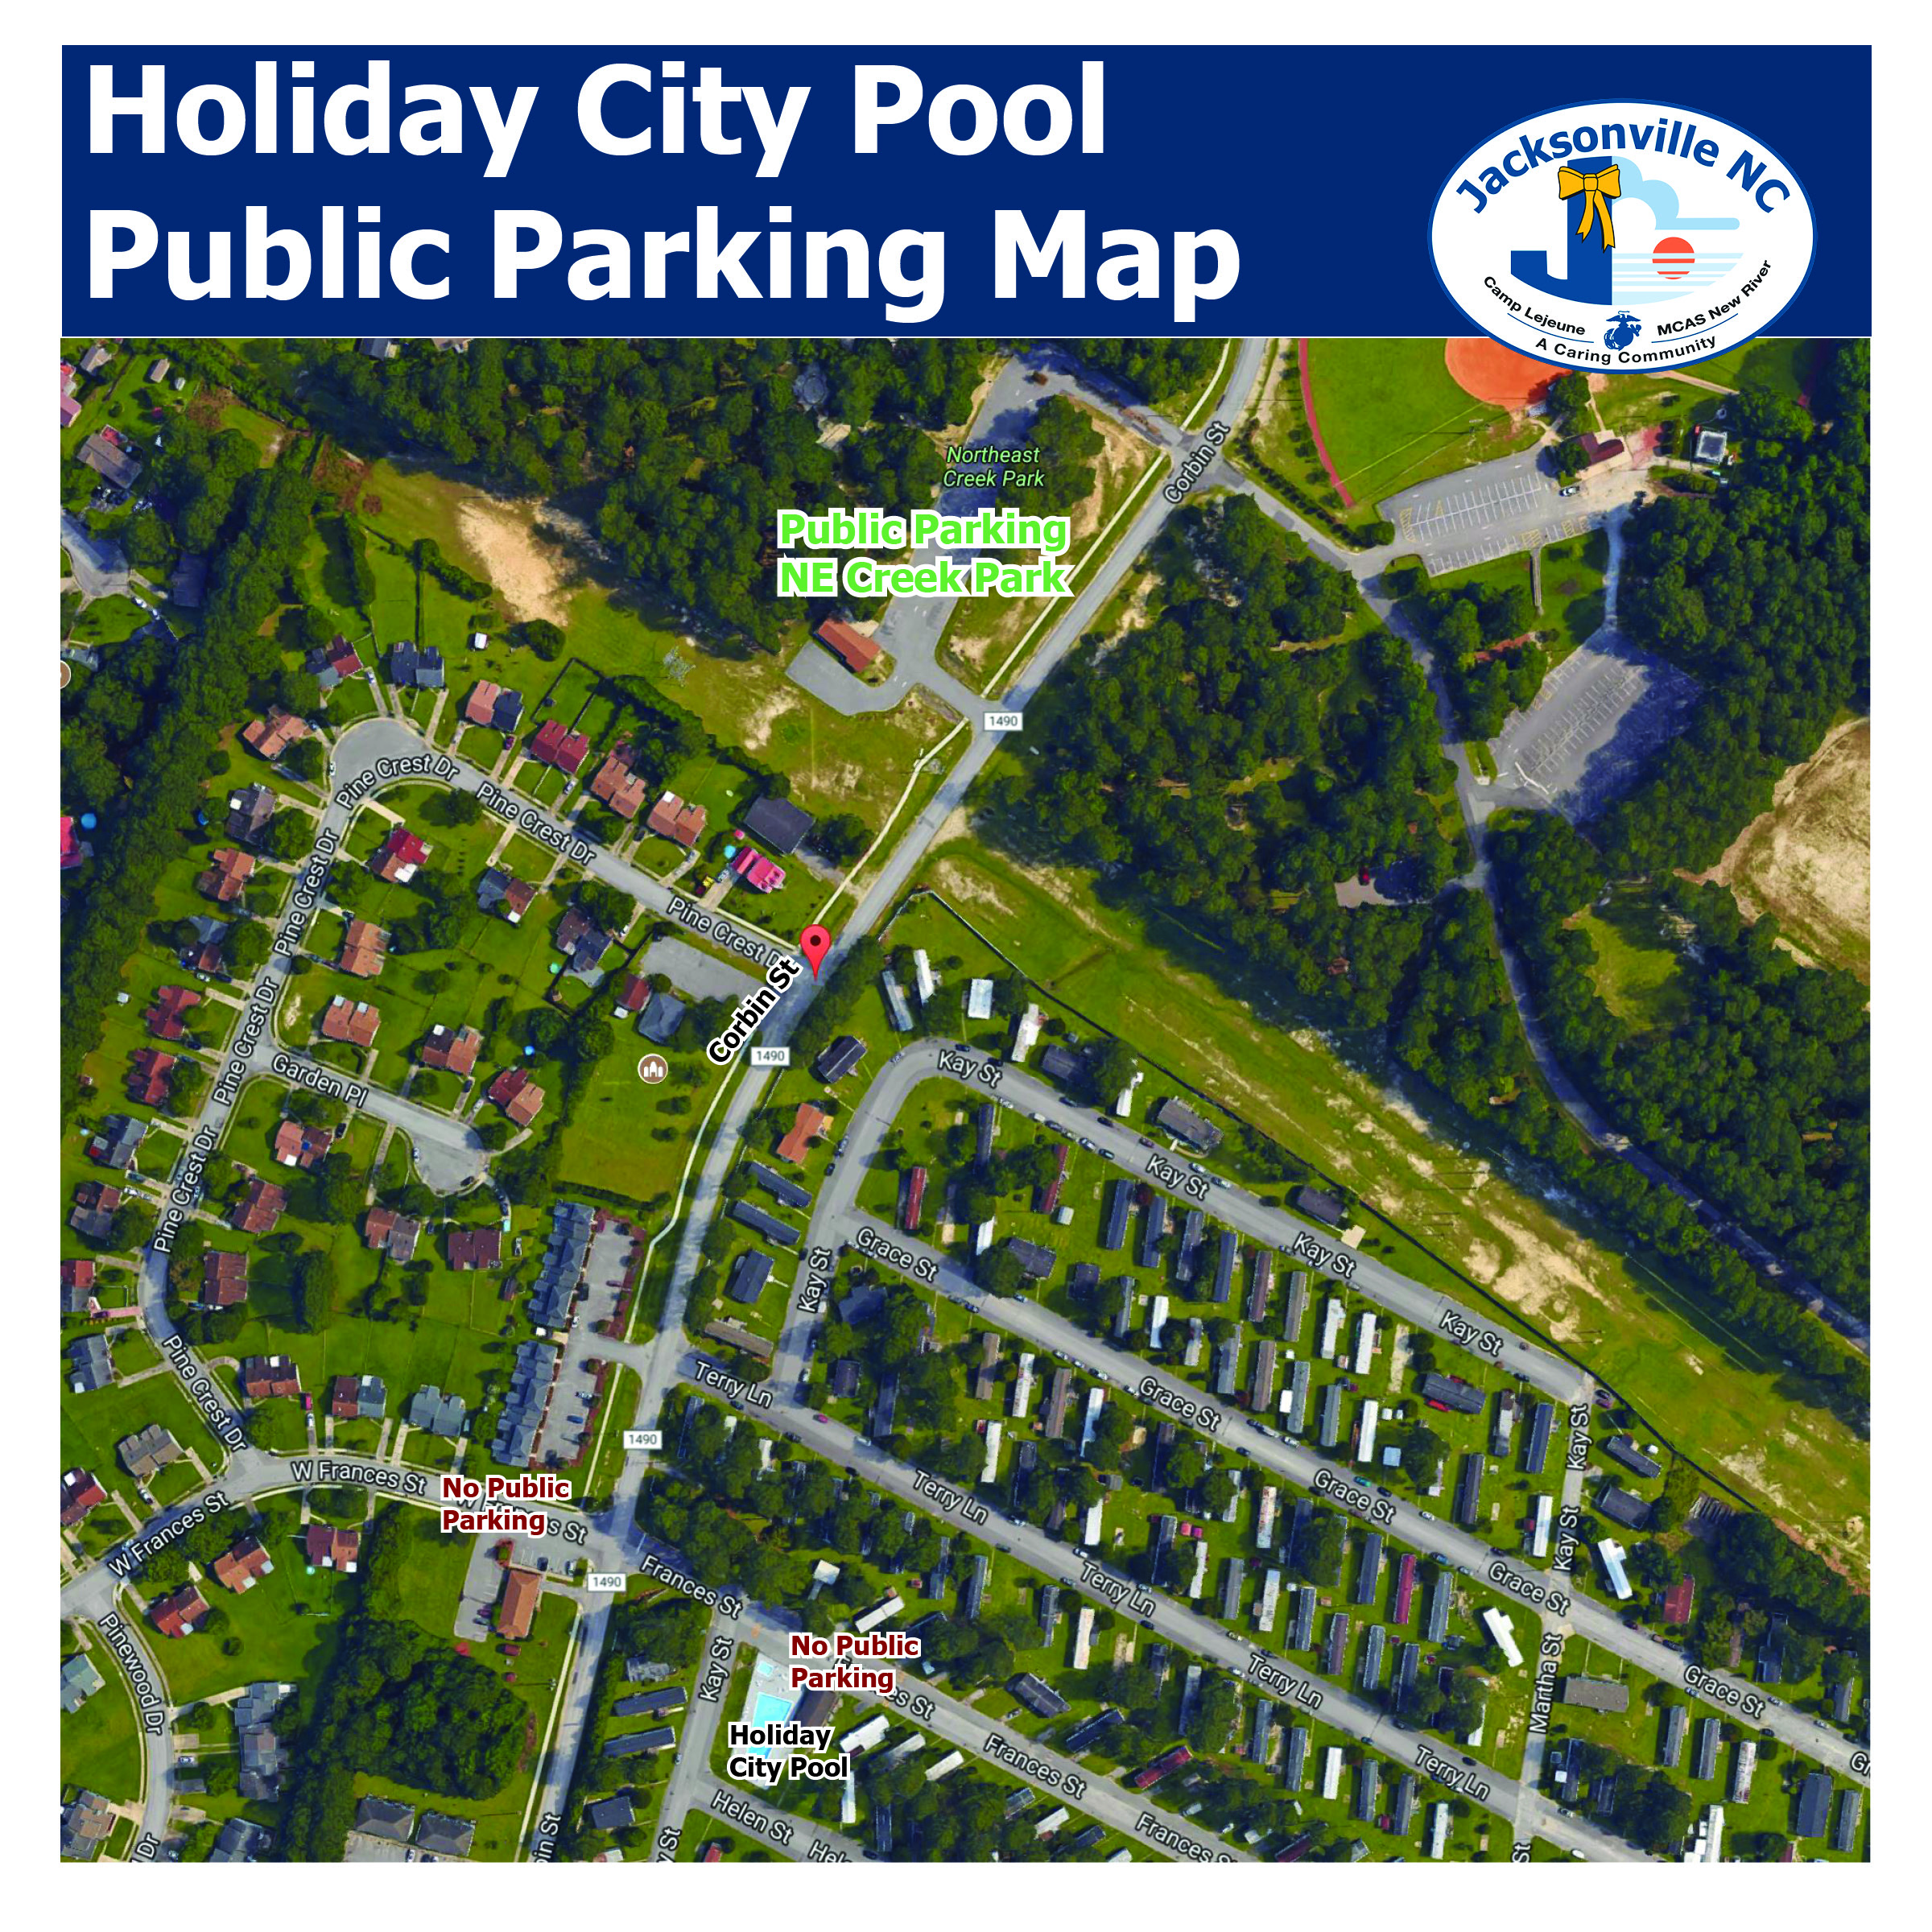 Public Parking for Holiday City Pool